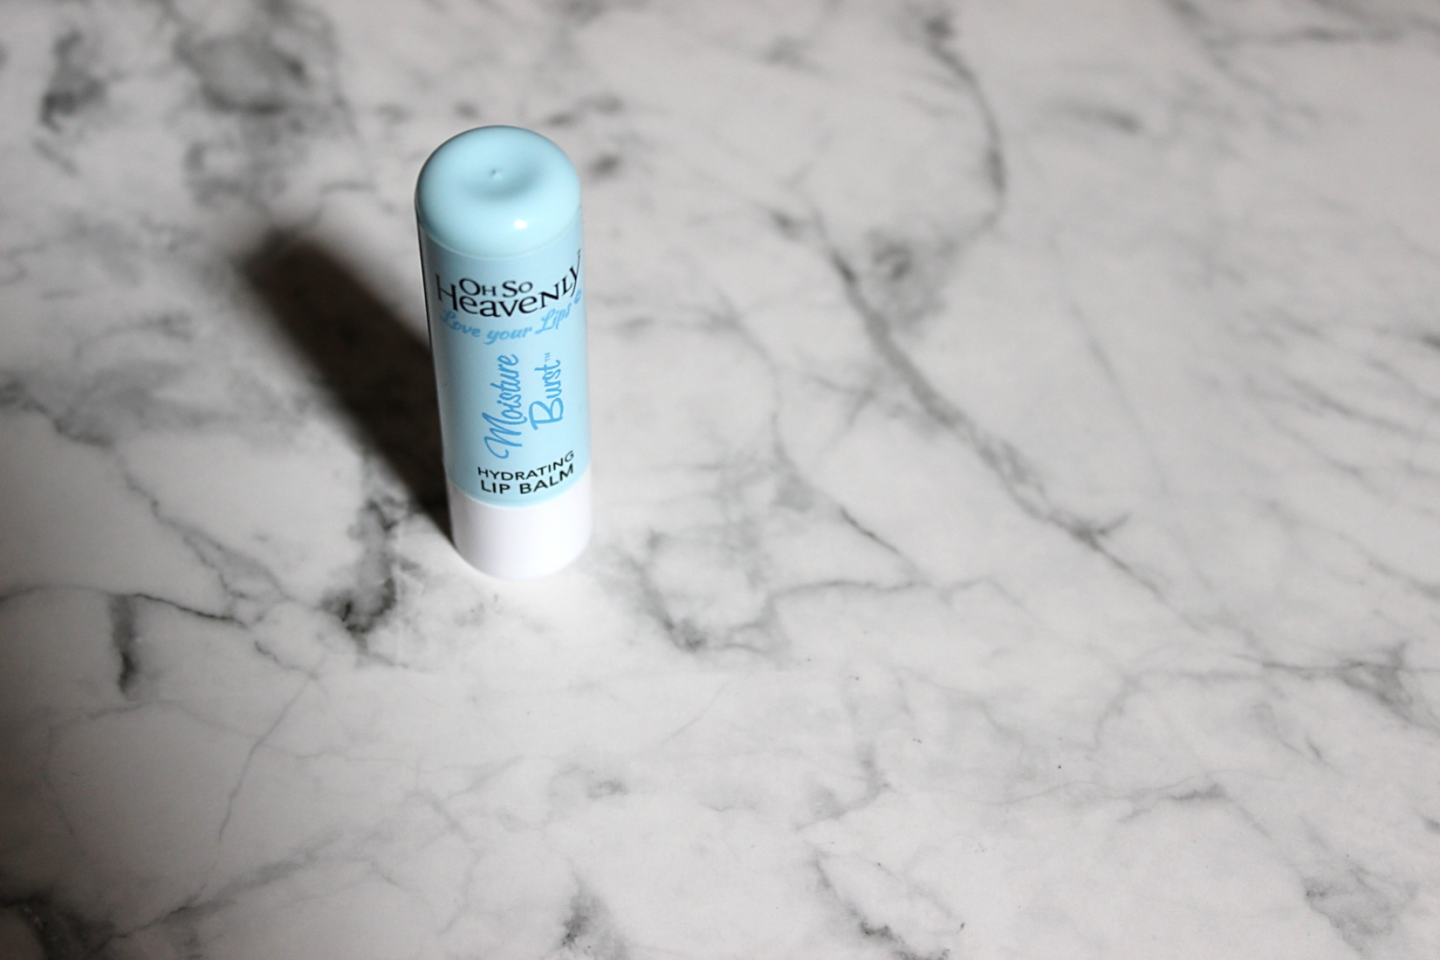 oh-so-heavenly-lip-balm